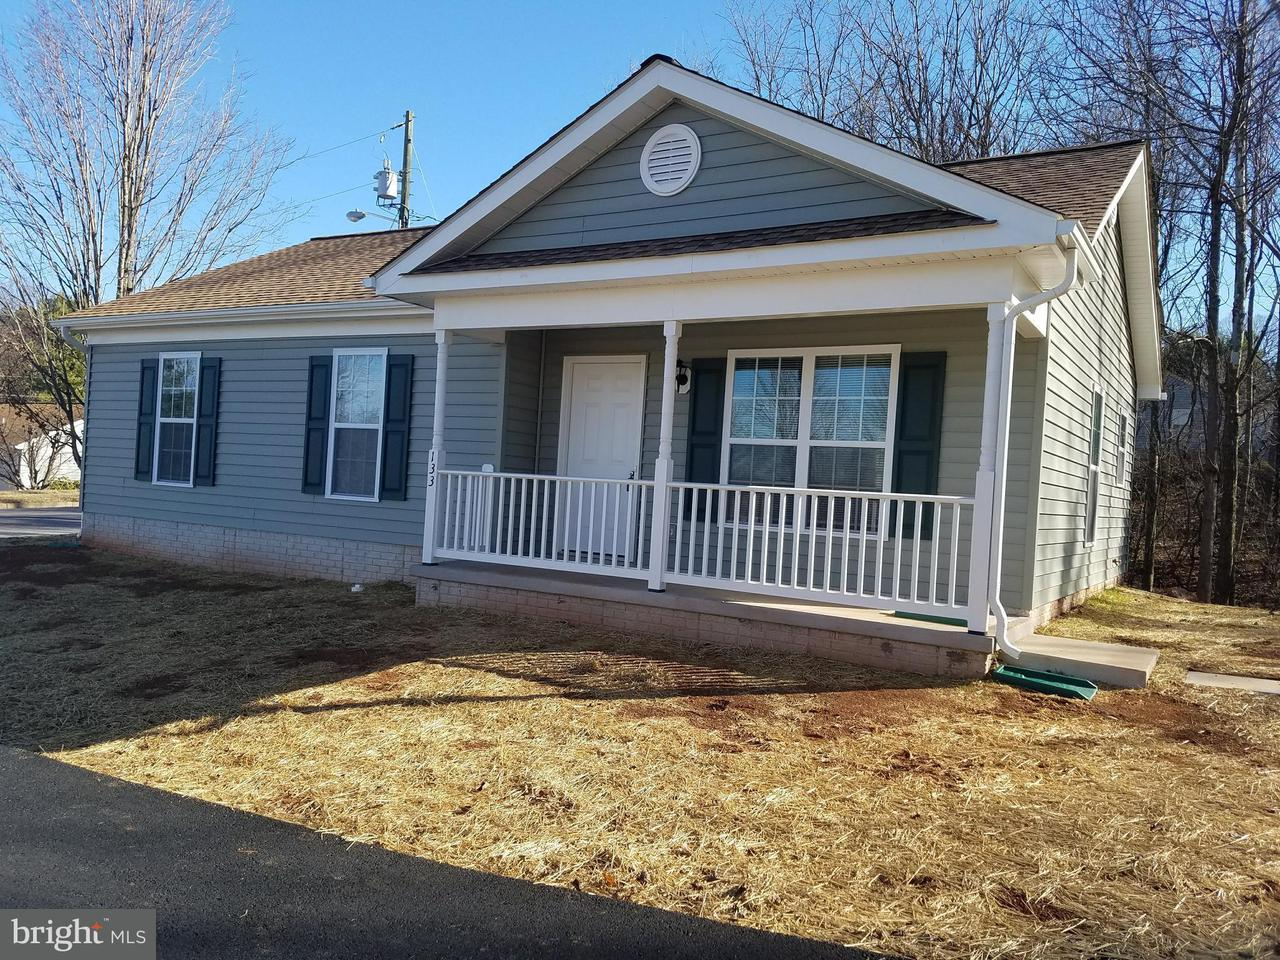 Other Residential for Rent at 133 Aberdeen Dr Culpeper, Virginia 22701 United States